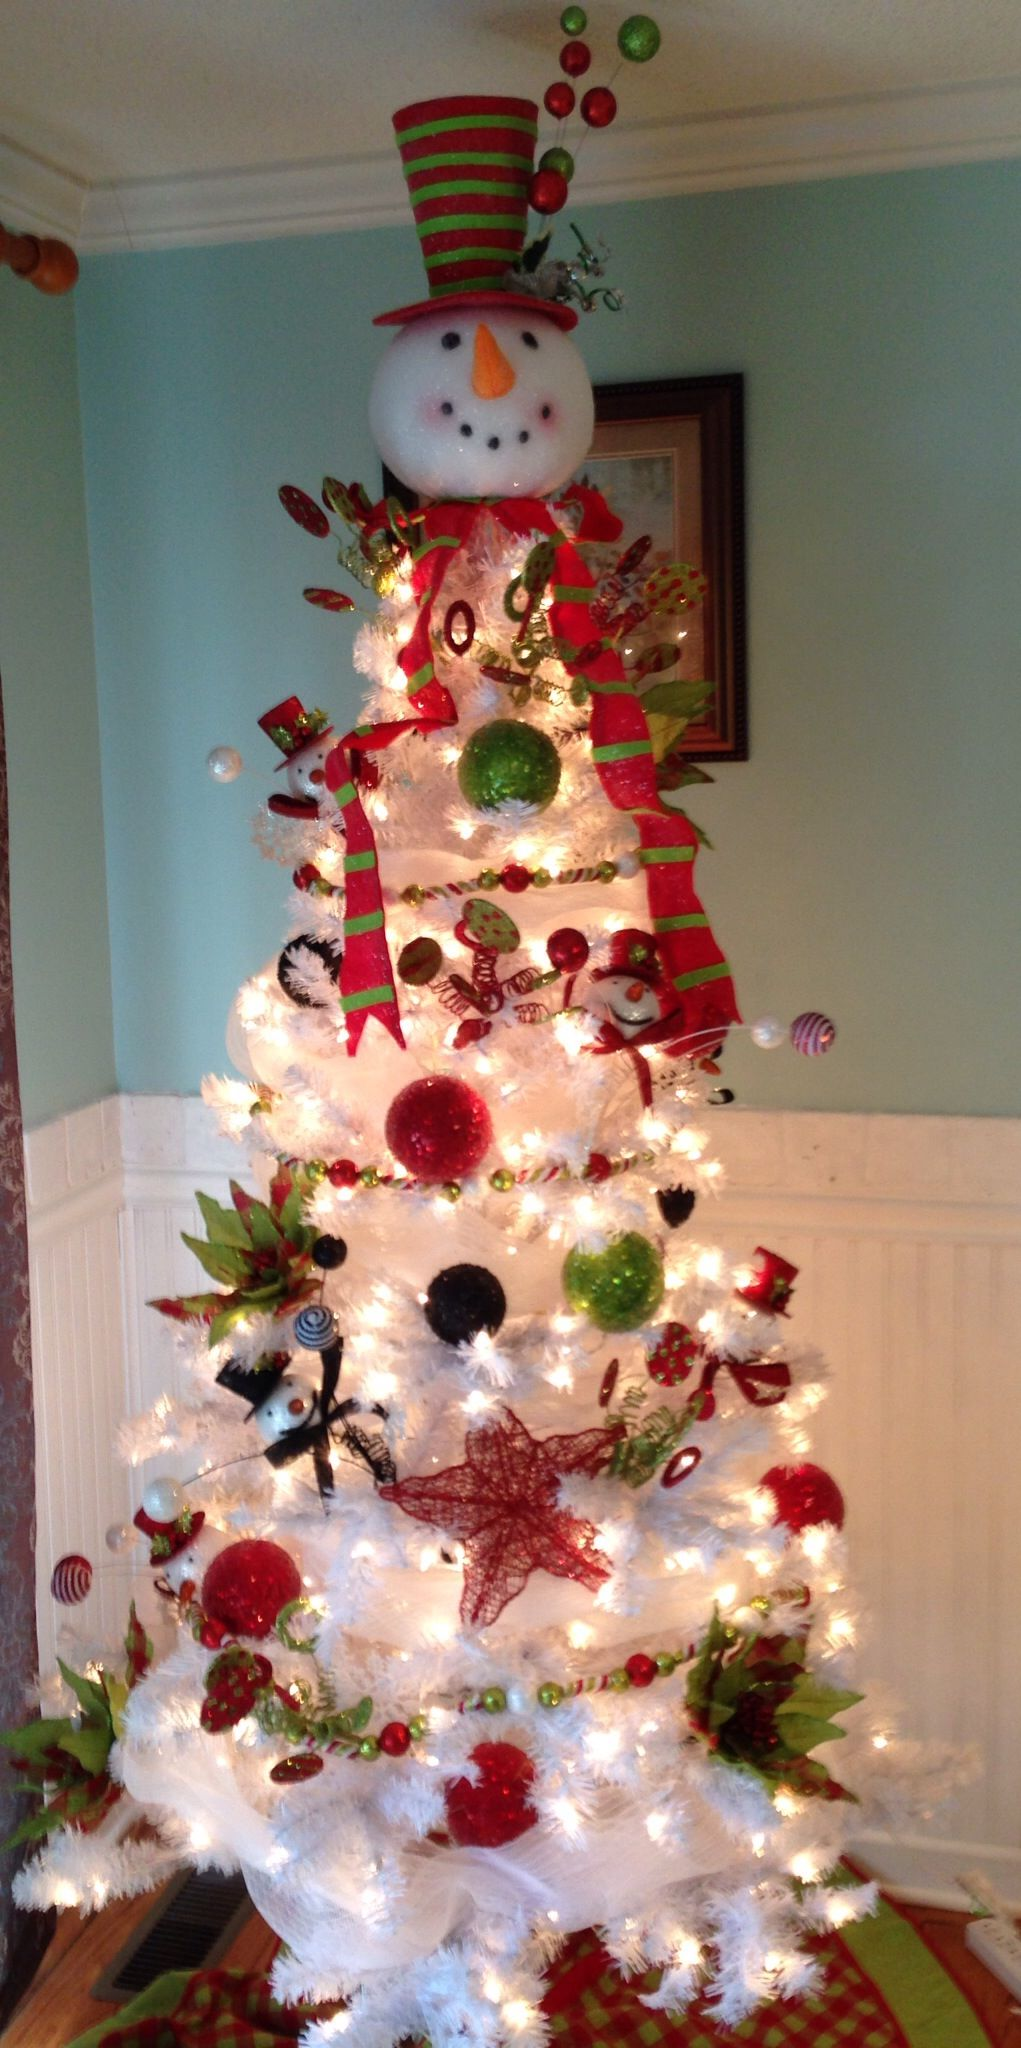 15 Snowman Christmas Tree Diy Decorations And Ideas Guide Patterns